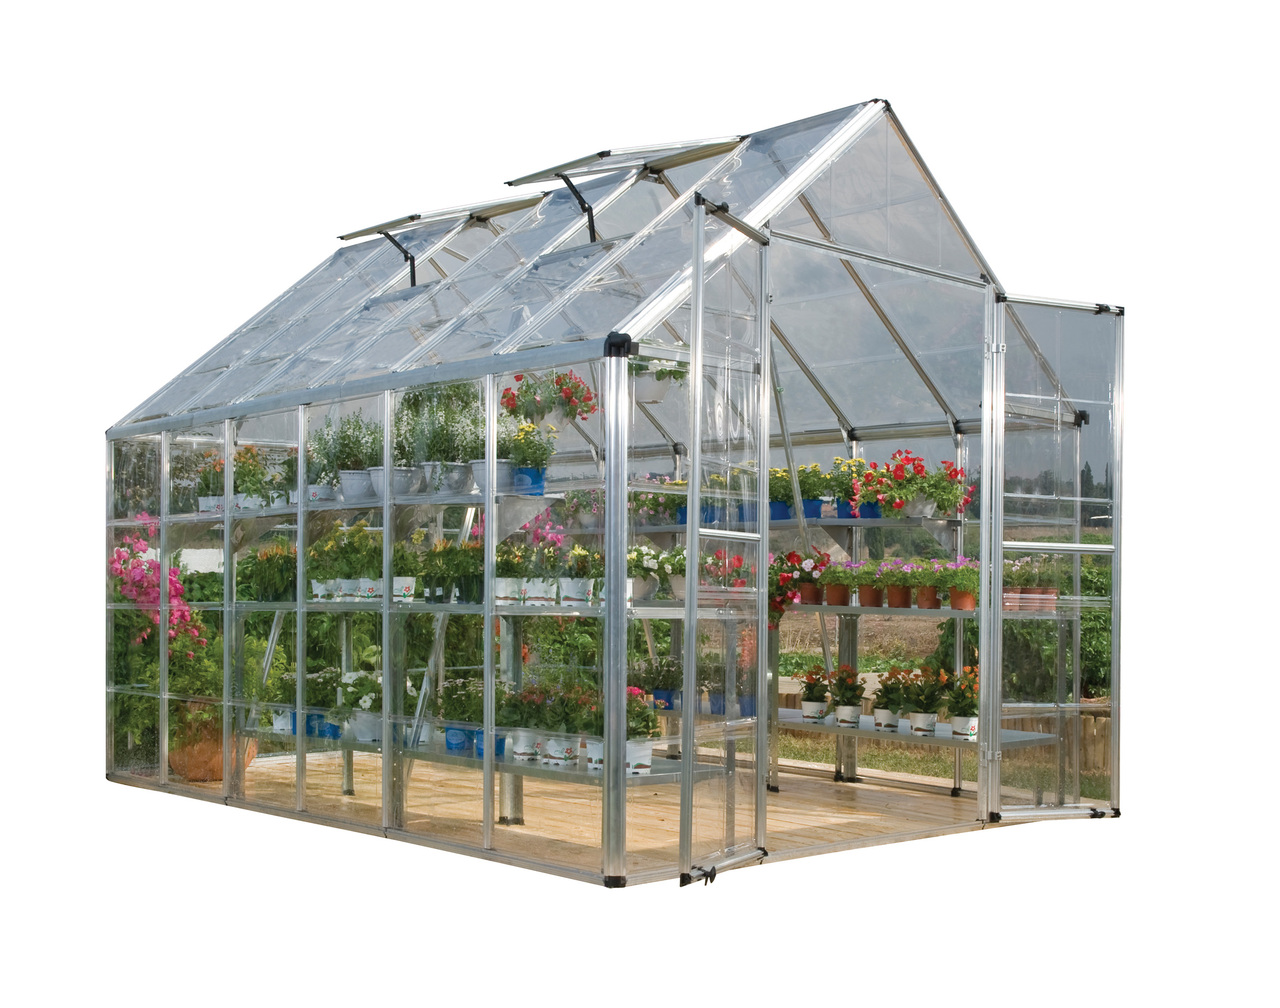 Palram Snap & Grow 8' x 12' Hobby Greenhouse, Silver